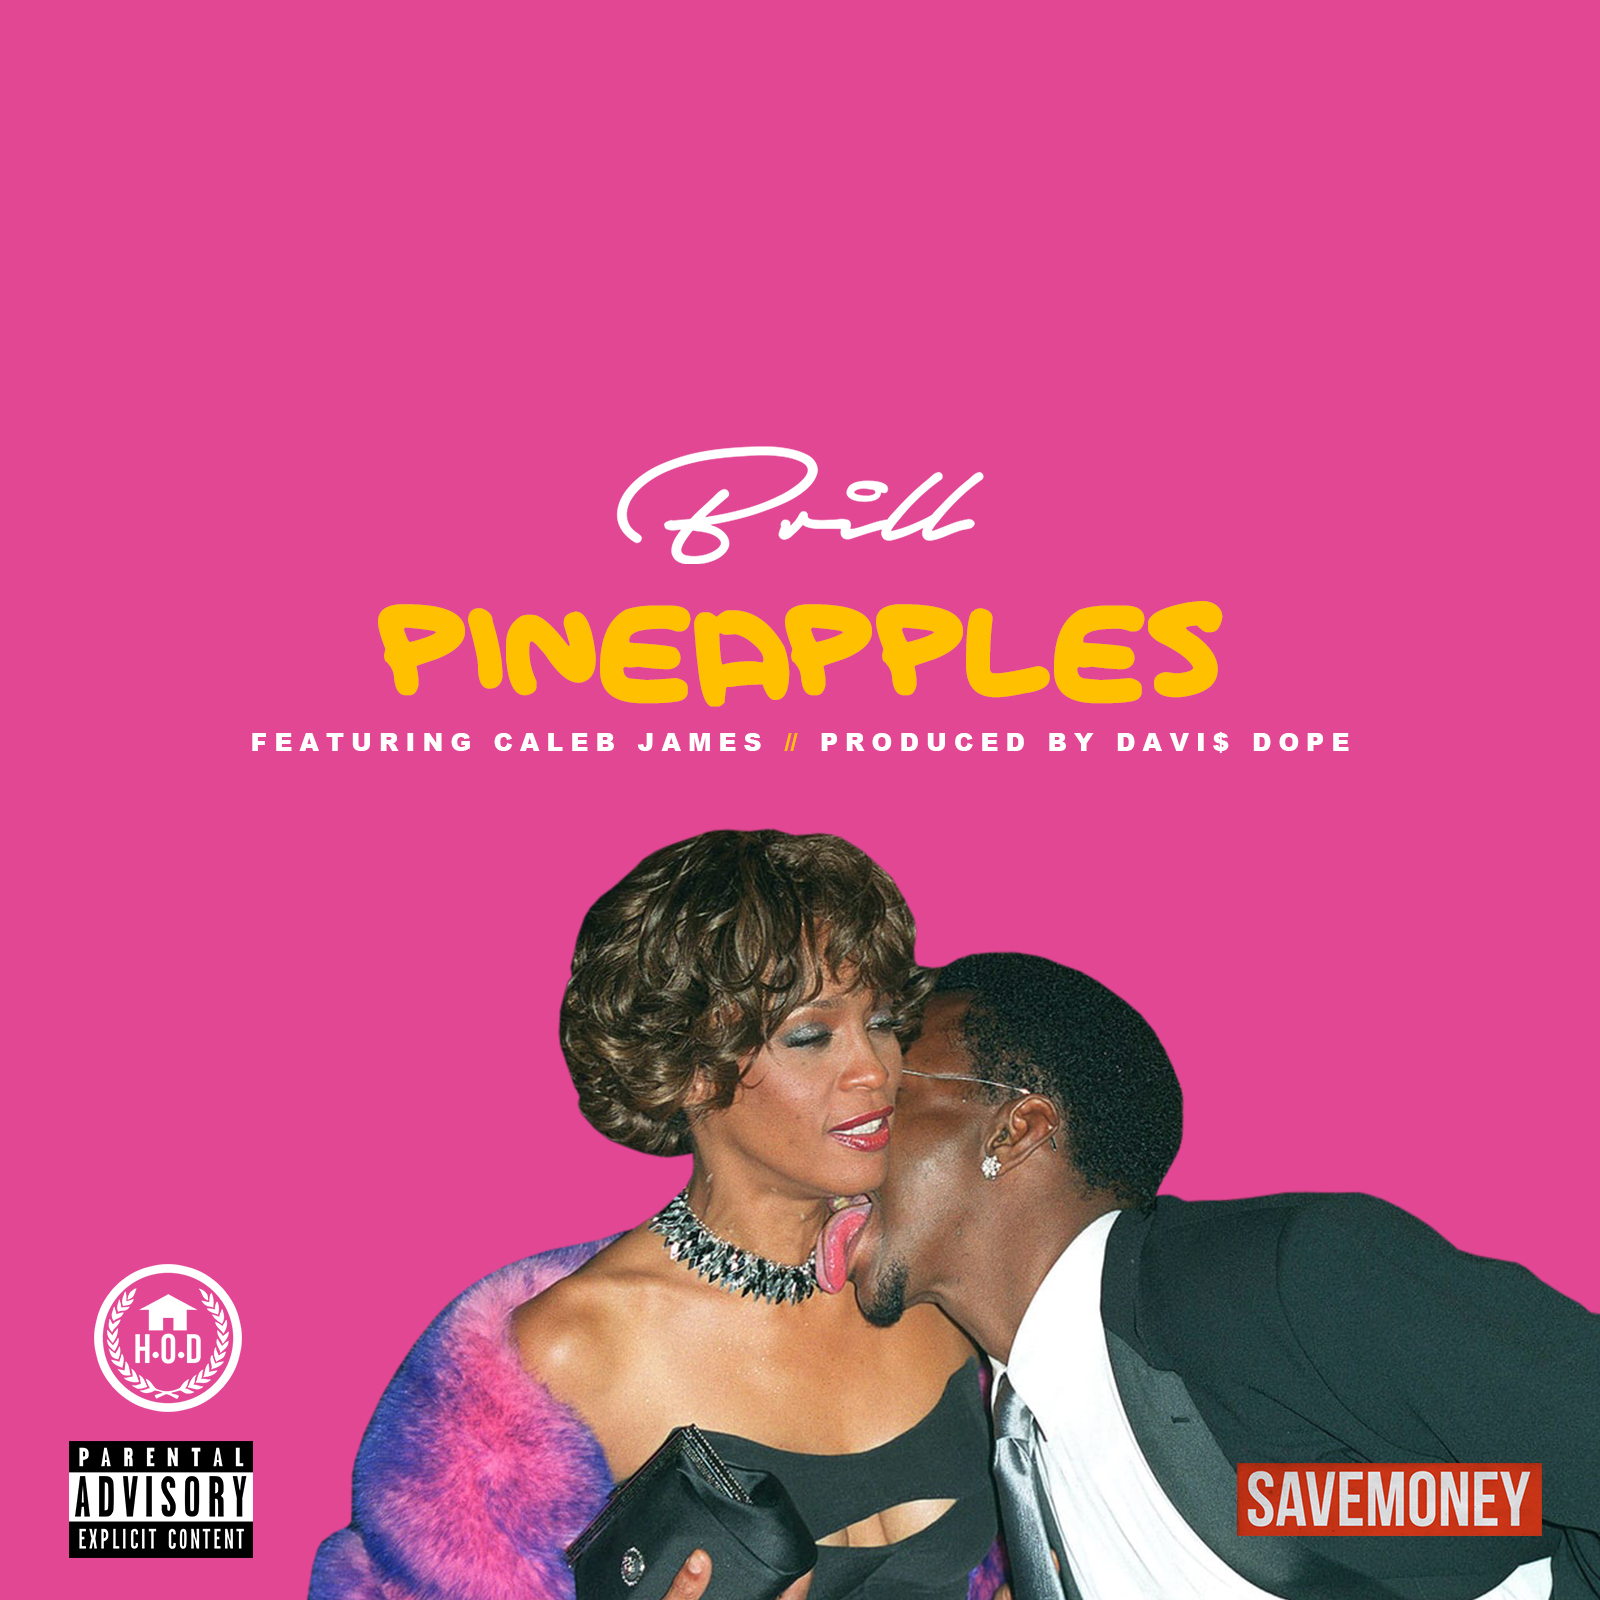 Brill ft. Caleb James- Pineapples (prod. Davi$ Dope)